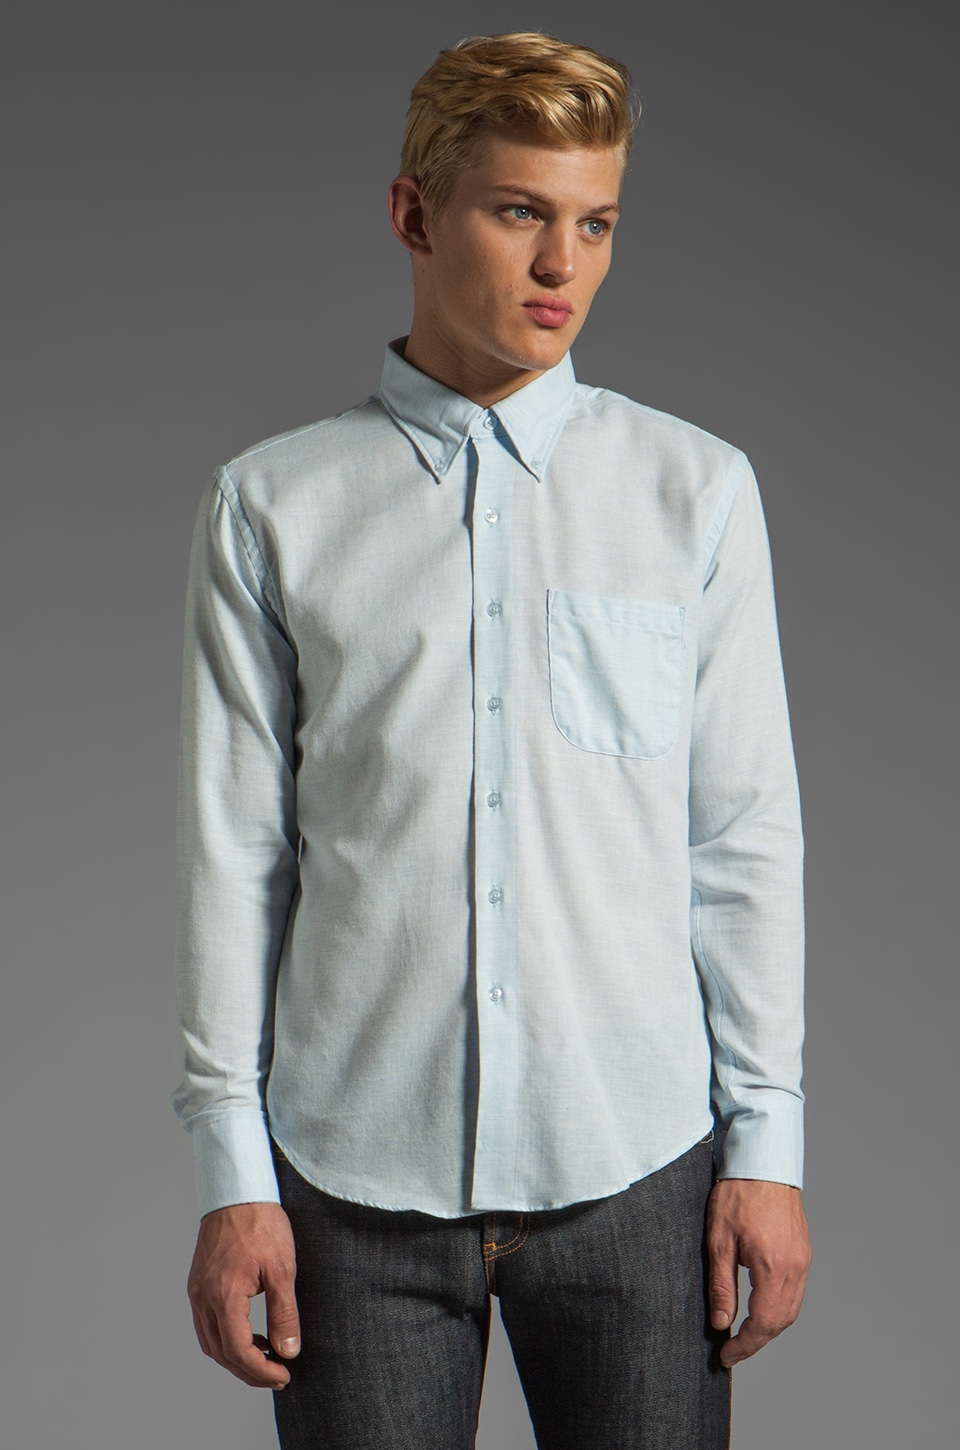 Naked & Famous Denim Slim Shirt 4 oz in Pale Blue Air